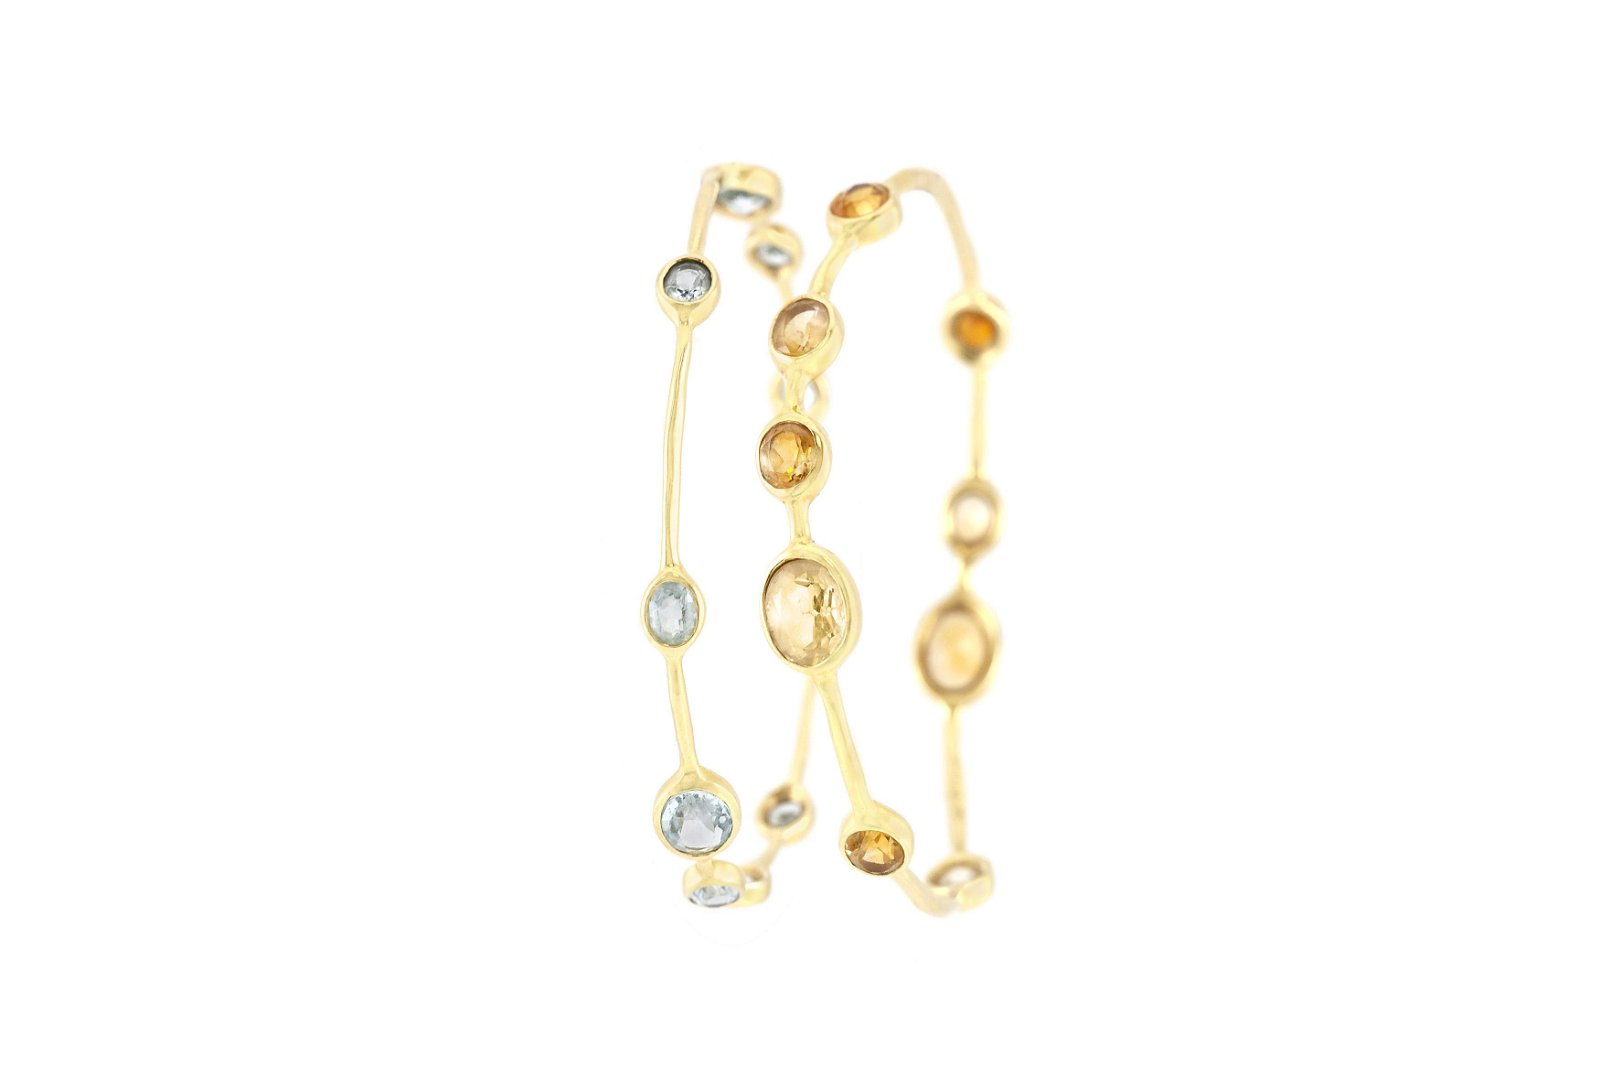 Authentic Two Ippolita Bangles with Citrine and